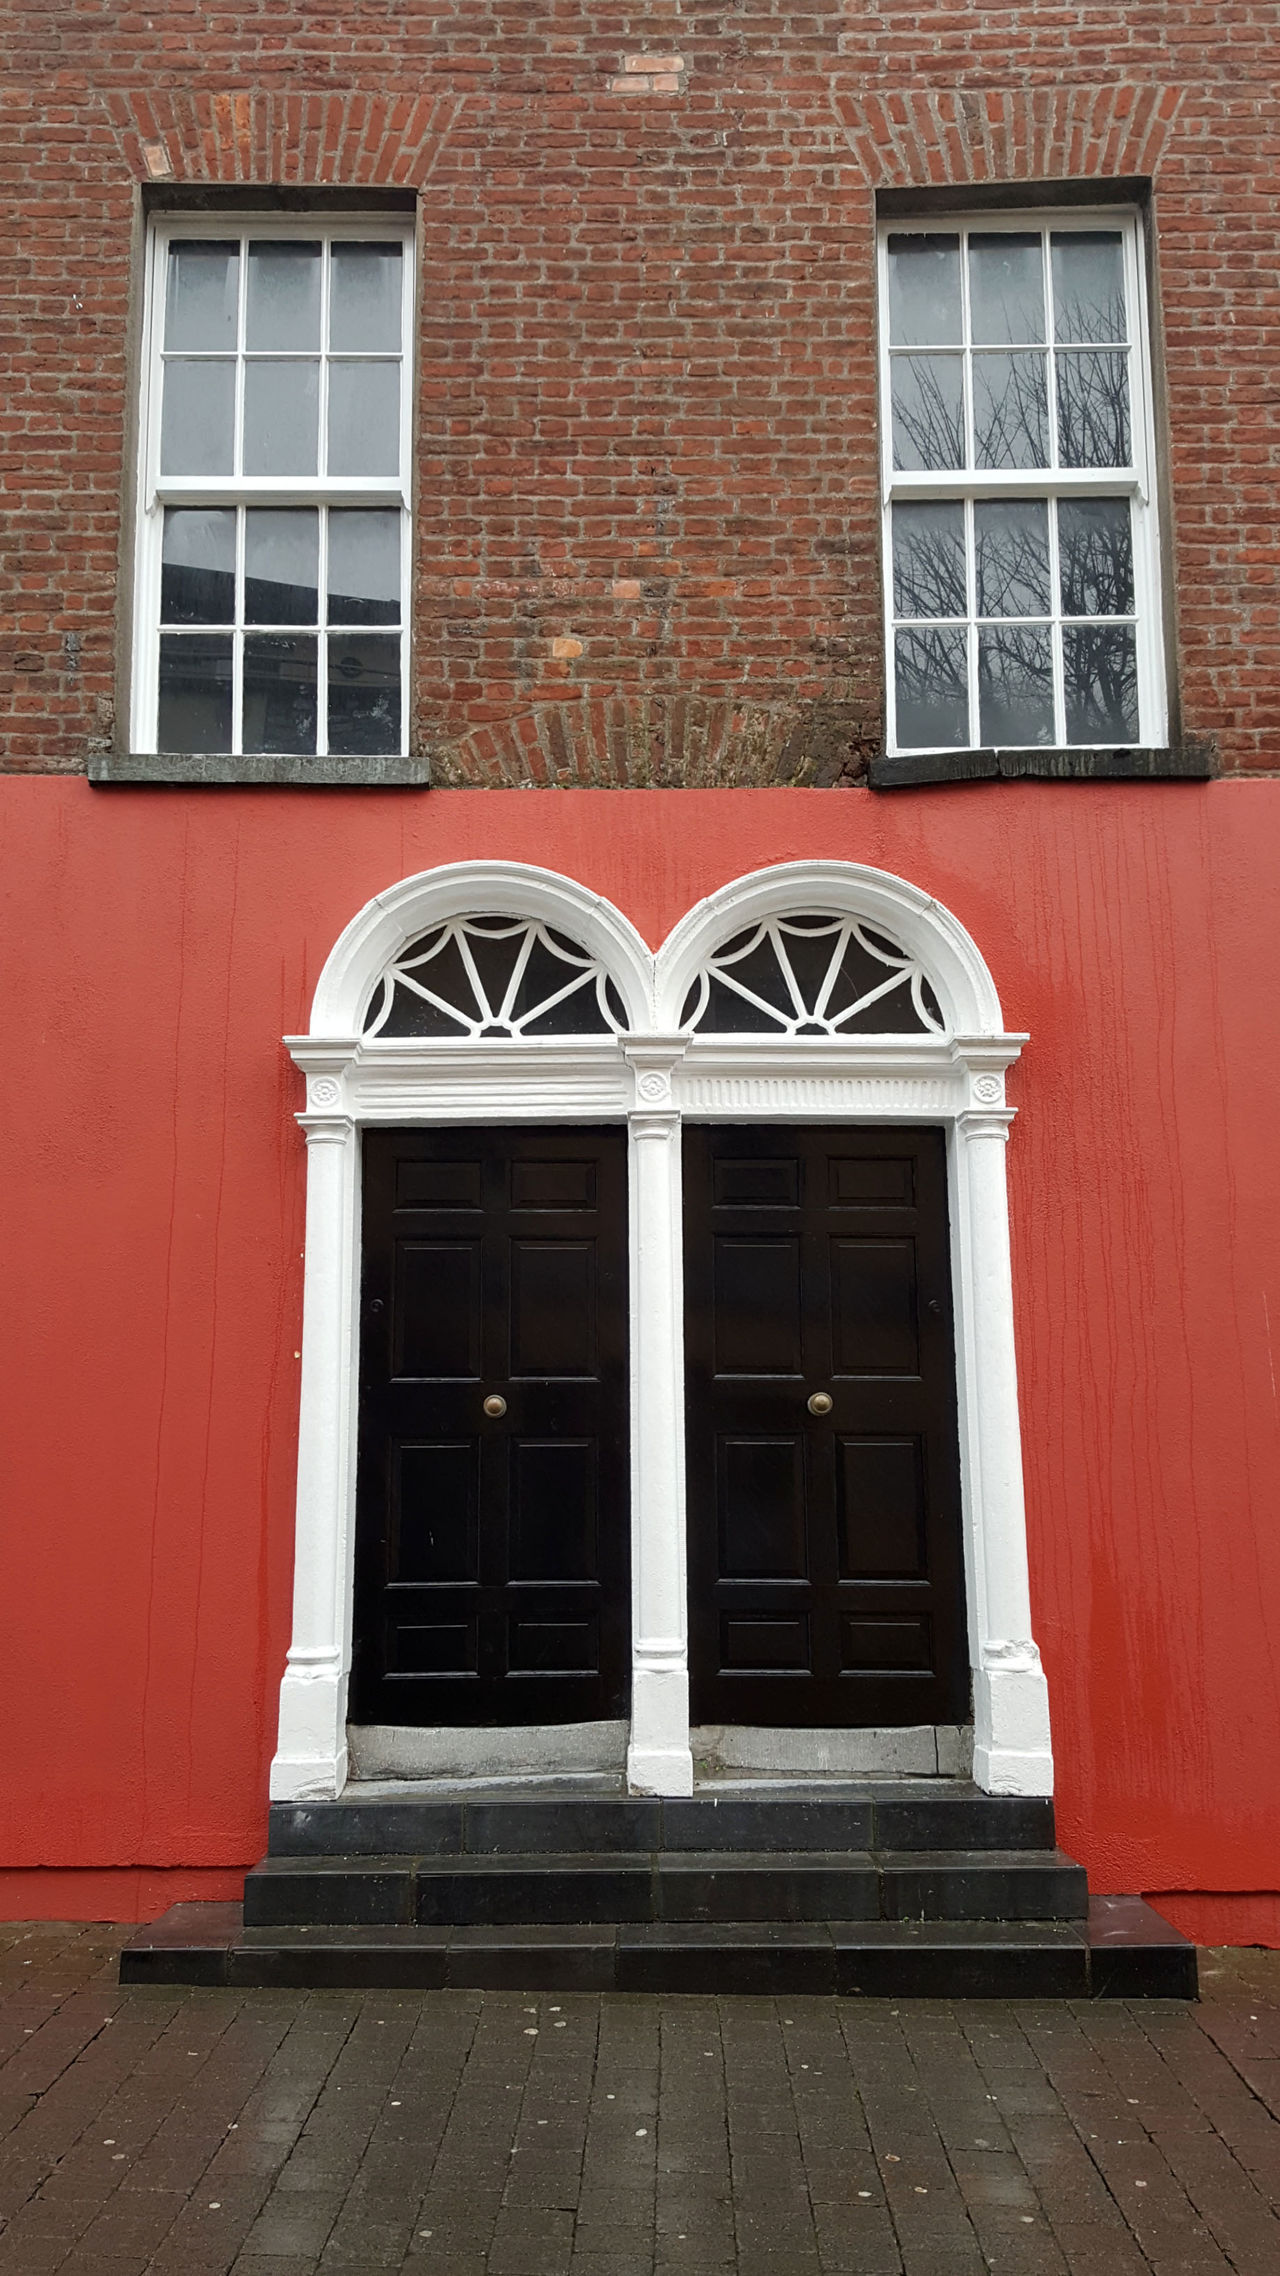 Conjoined twins Architecture Brick Wall Building Exterior Doors Doorstep Façade Fanlight Outdoors Red Twins Window